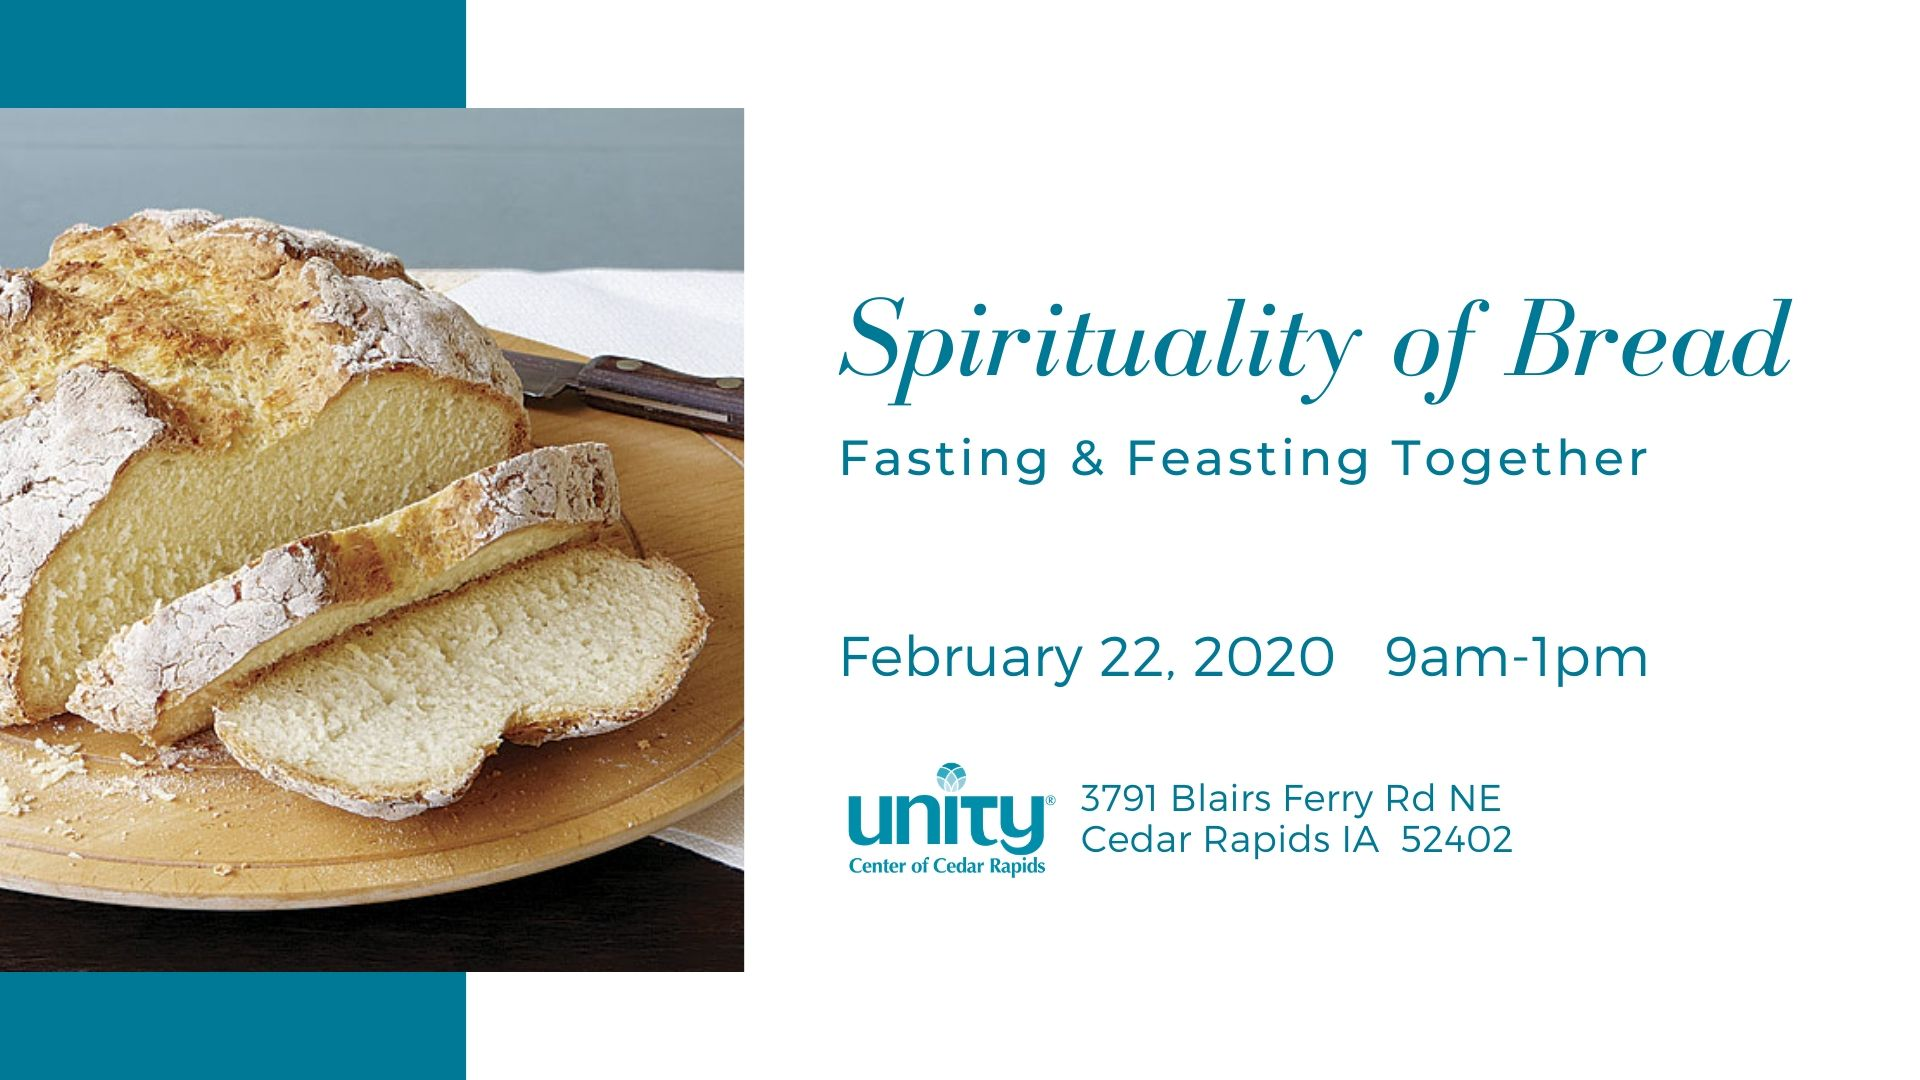 Spirituality of Bread - Fasting and Feasting Together